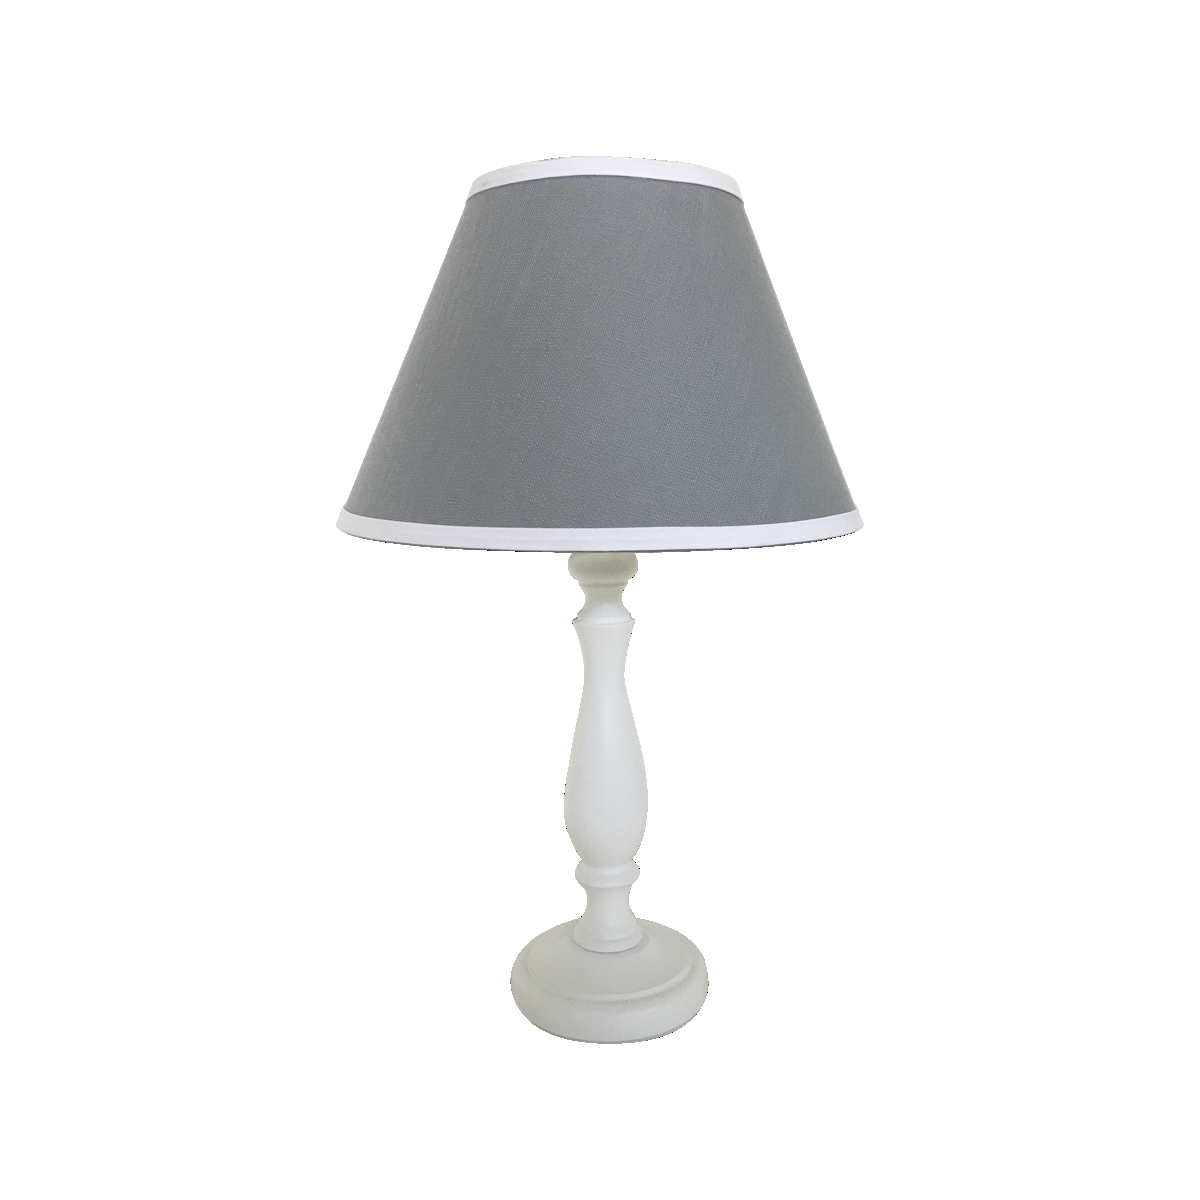 Bedside Lamp White Base W Grey Shade Steal The Limelight